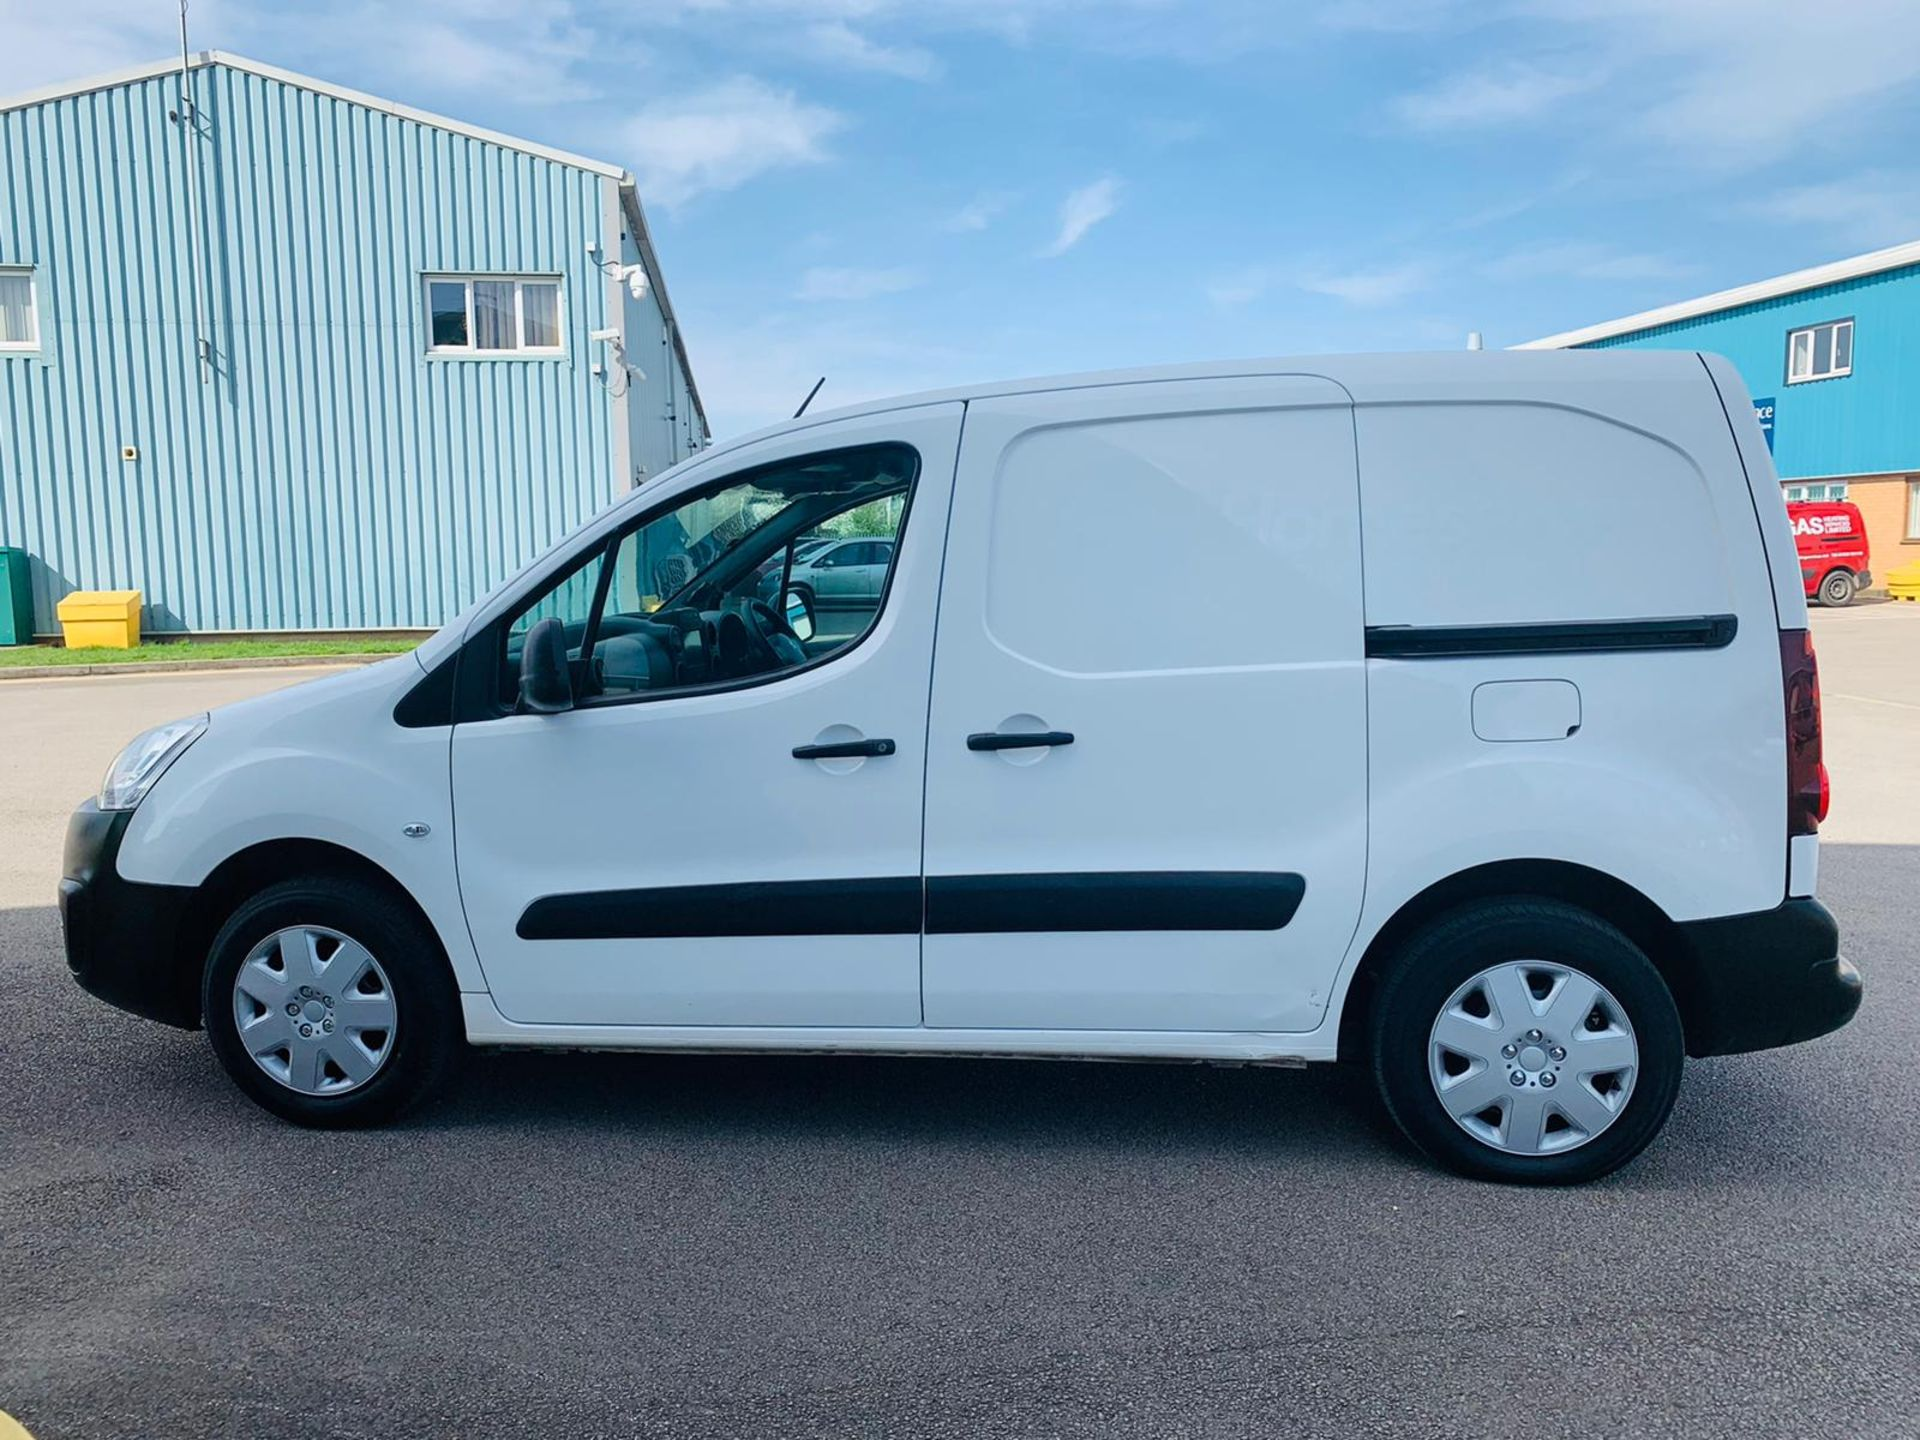 Peugeot Partner 1.6 HDI Professional 2017 Model - 1 Owner - Service Printout - Air Con - Image 6 of 23